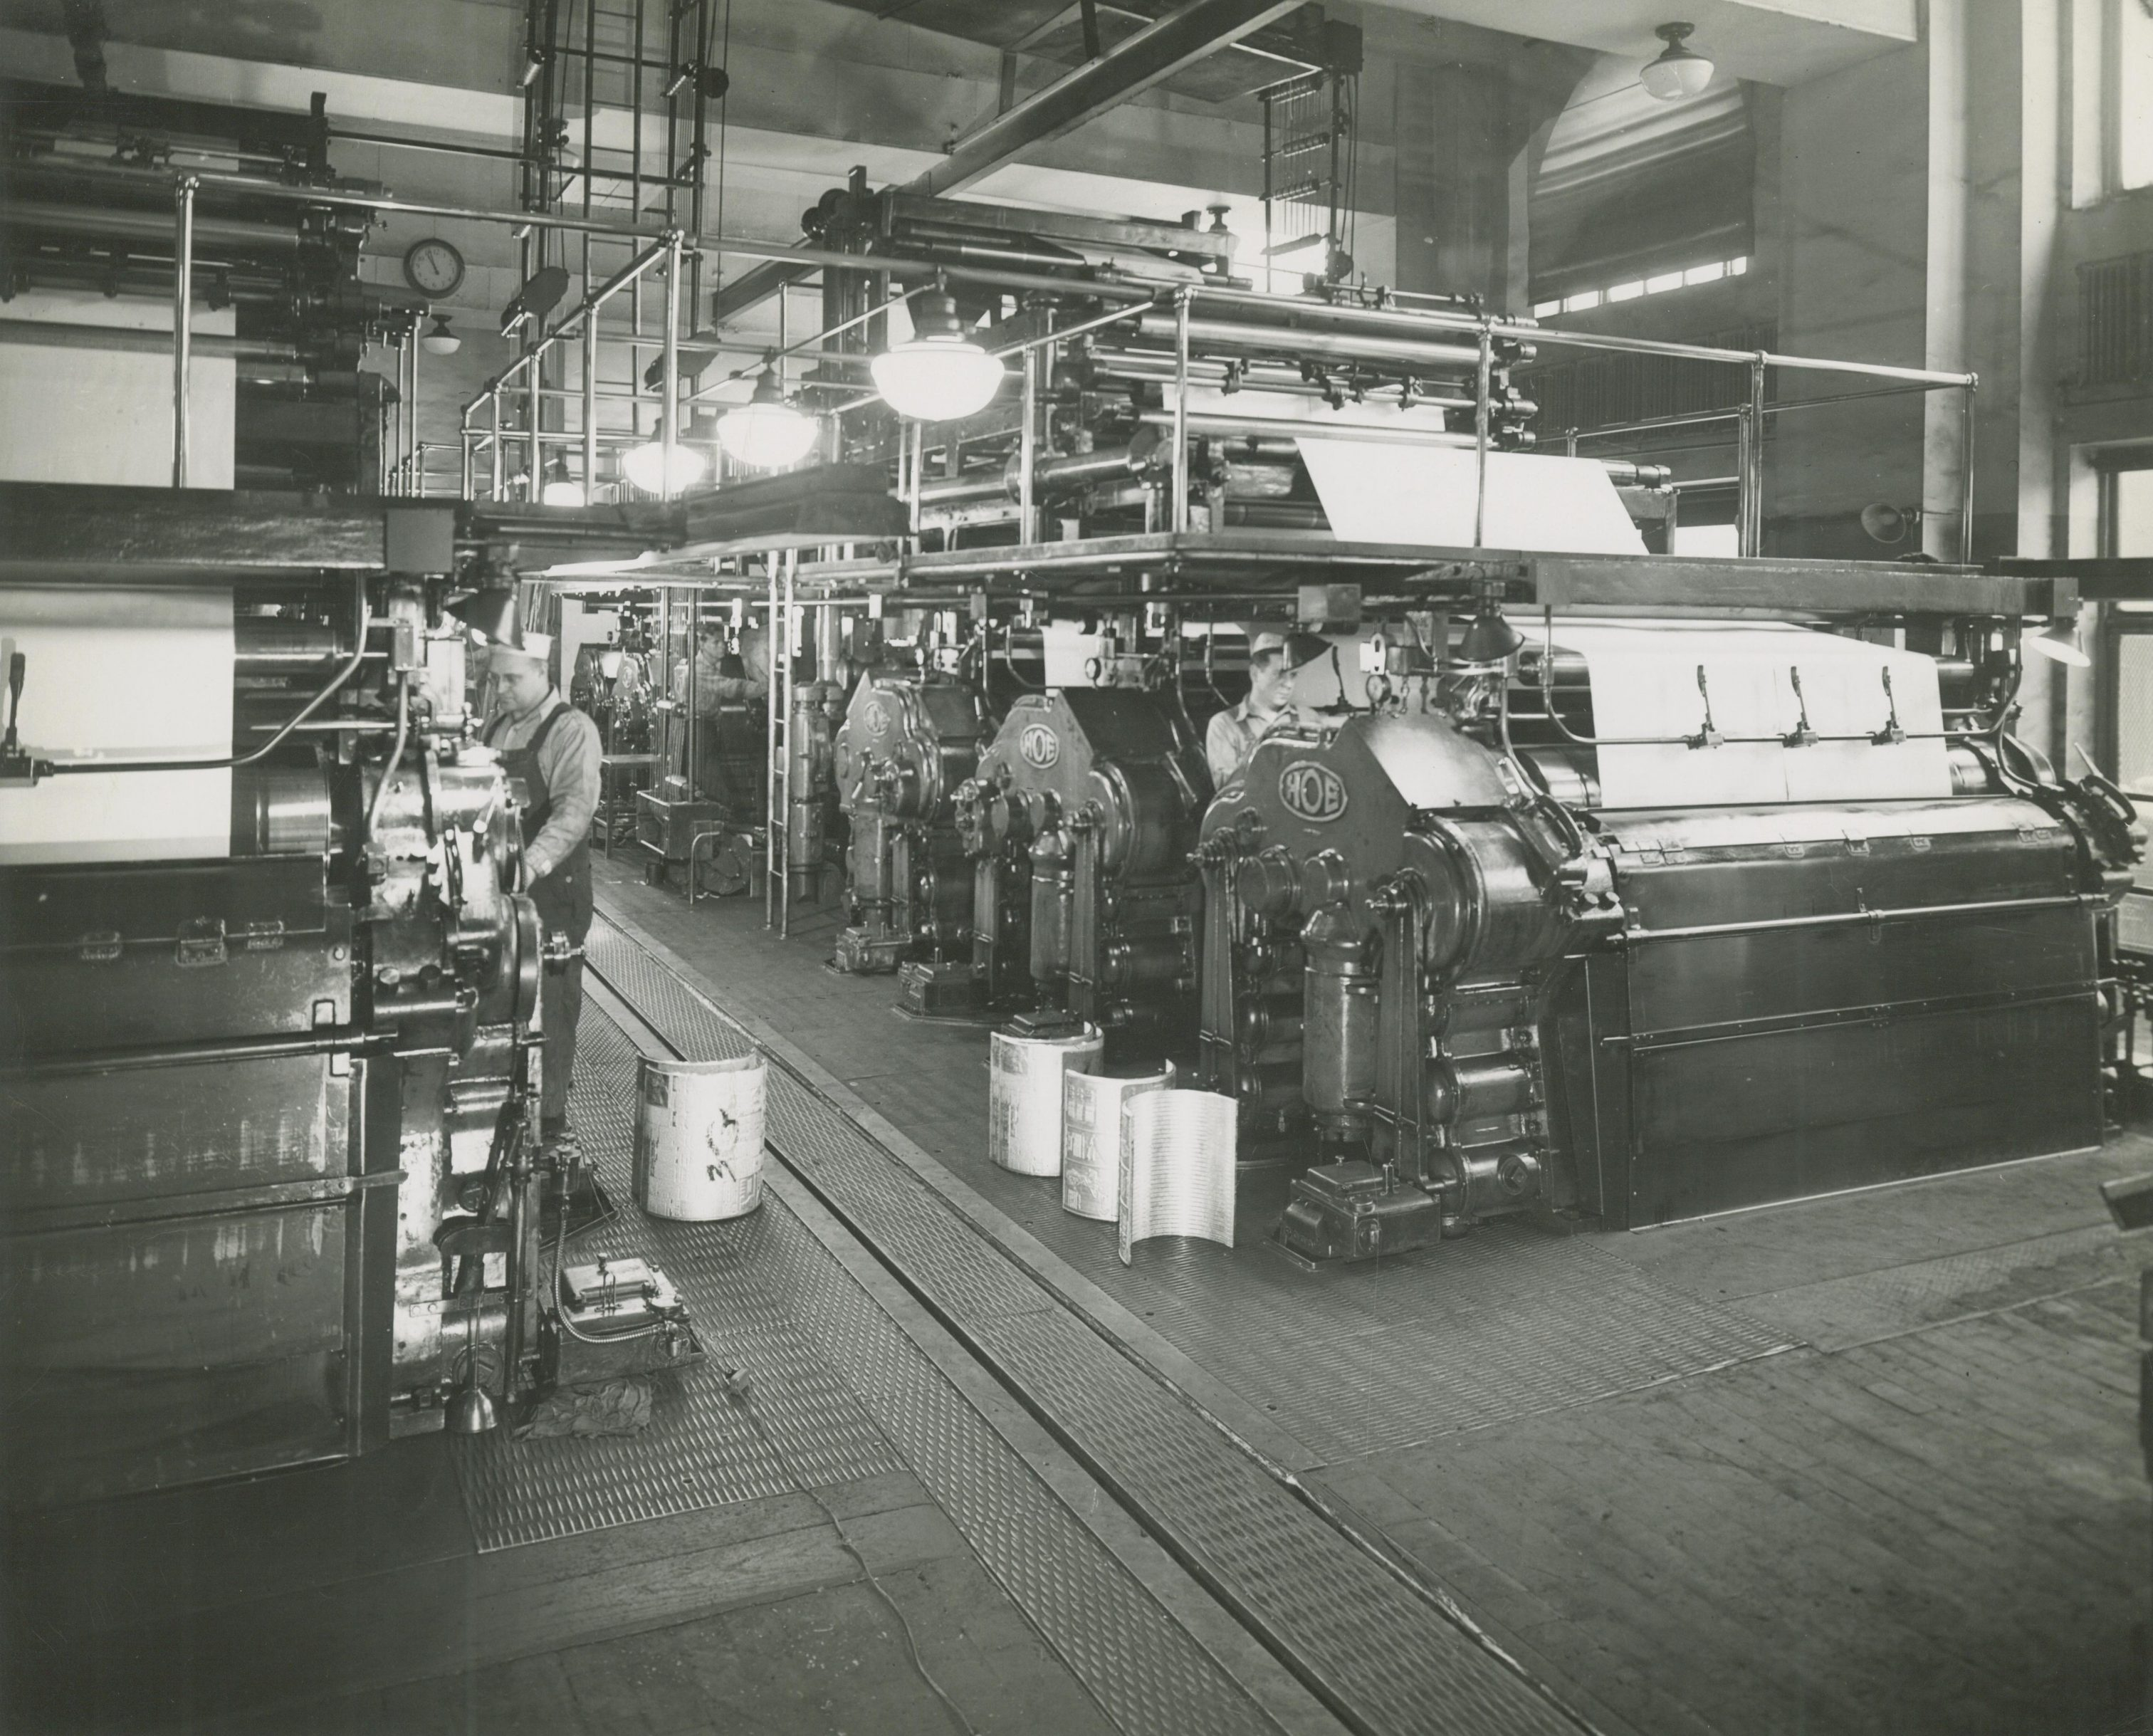 Workers running the presses at the Milwaukee Journal in this 1947 photograph.